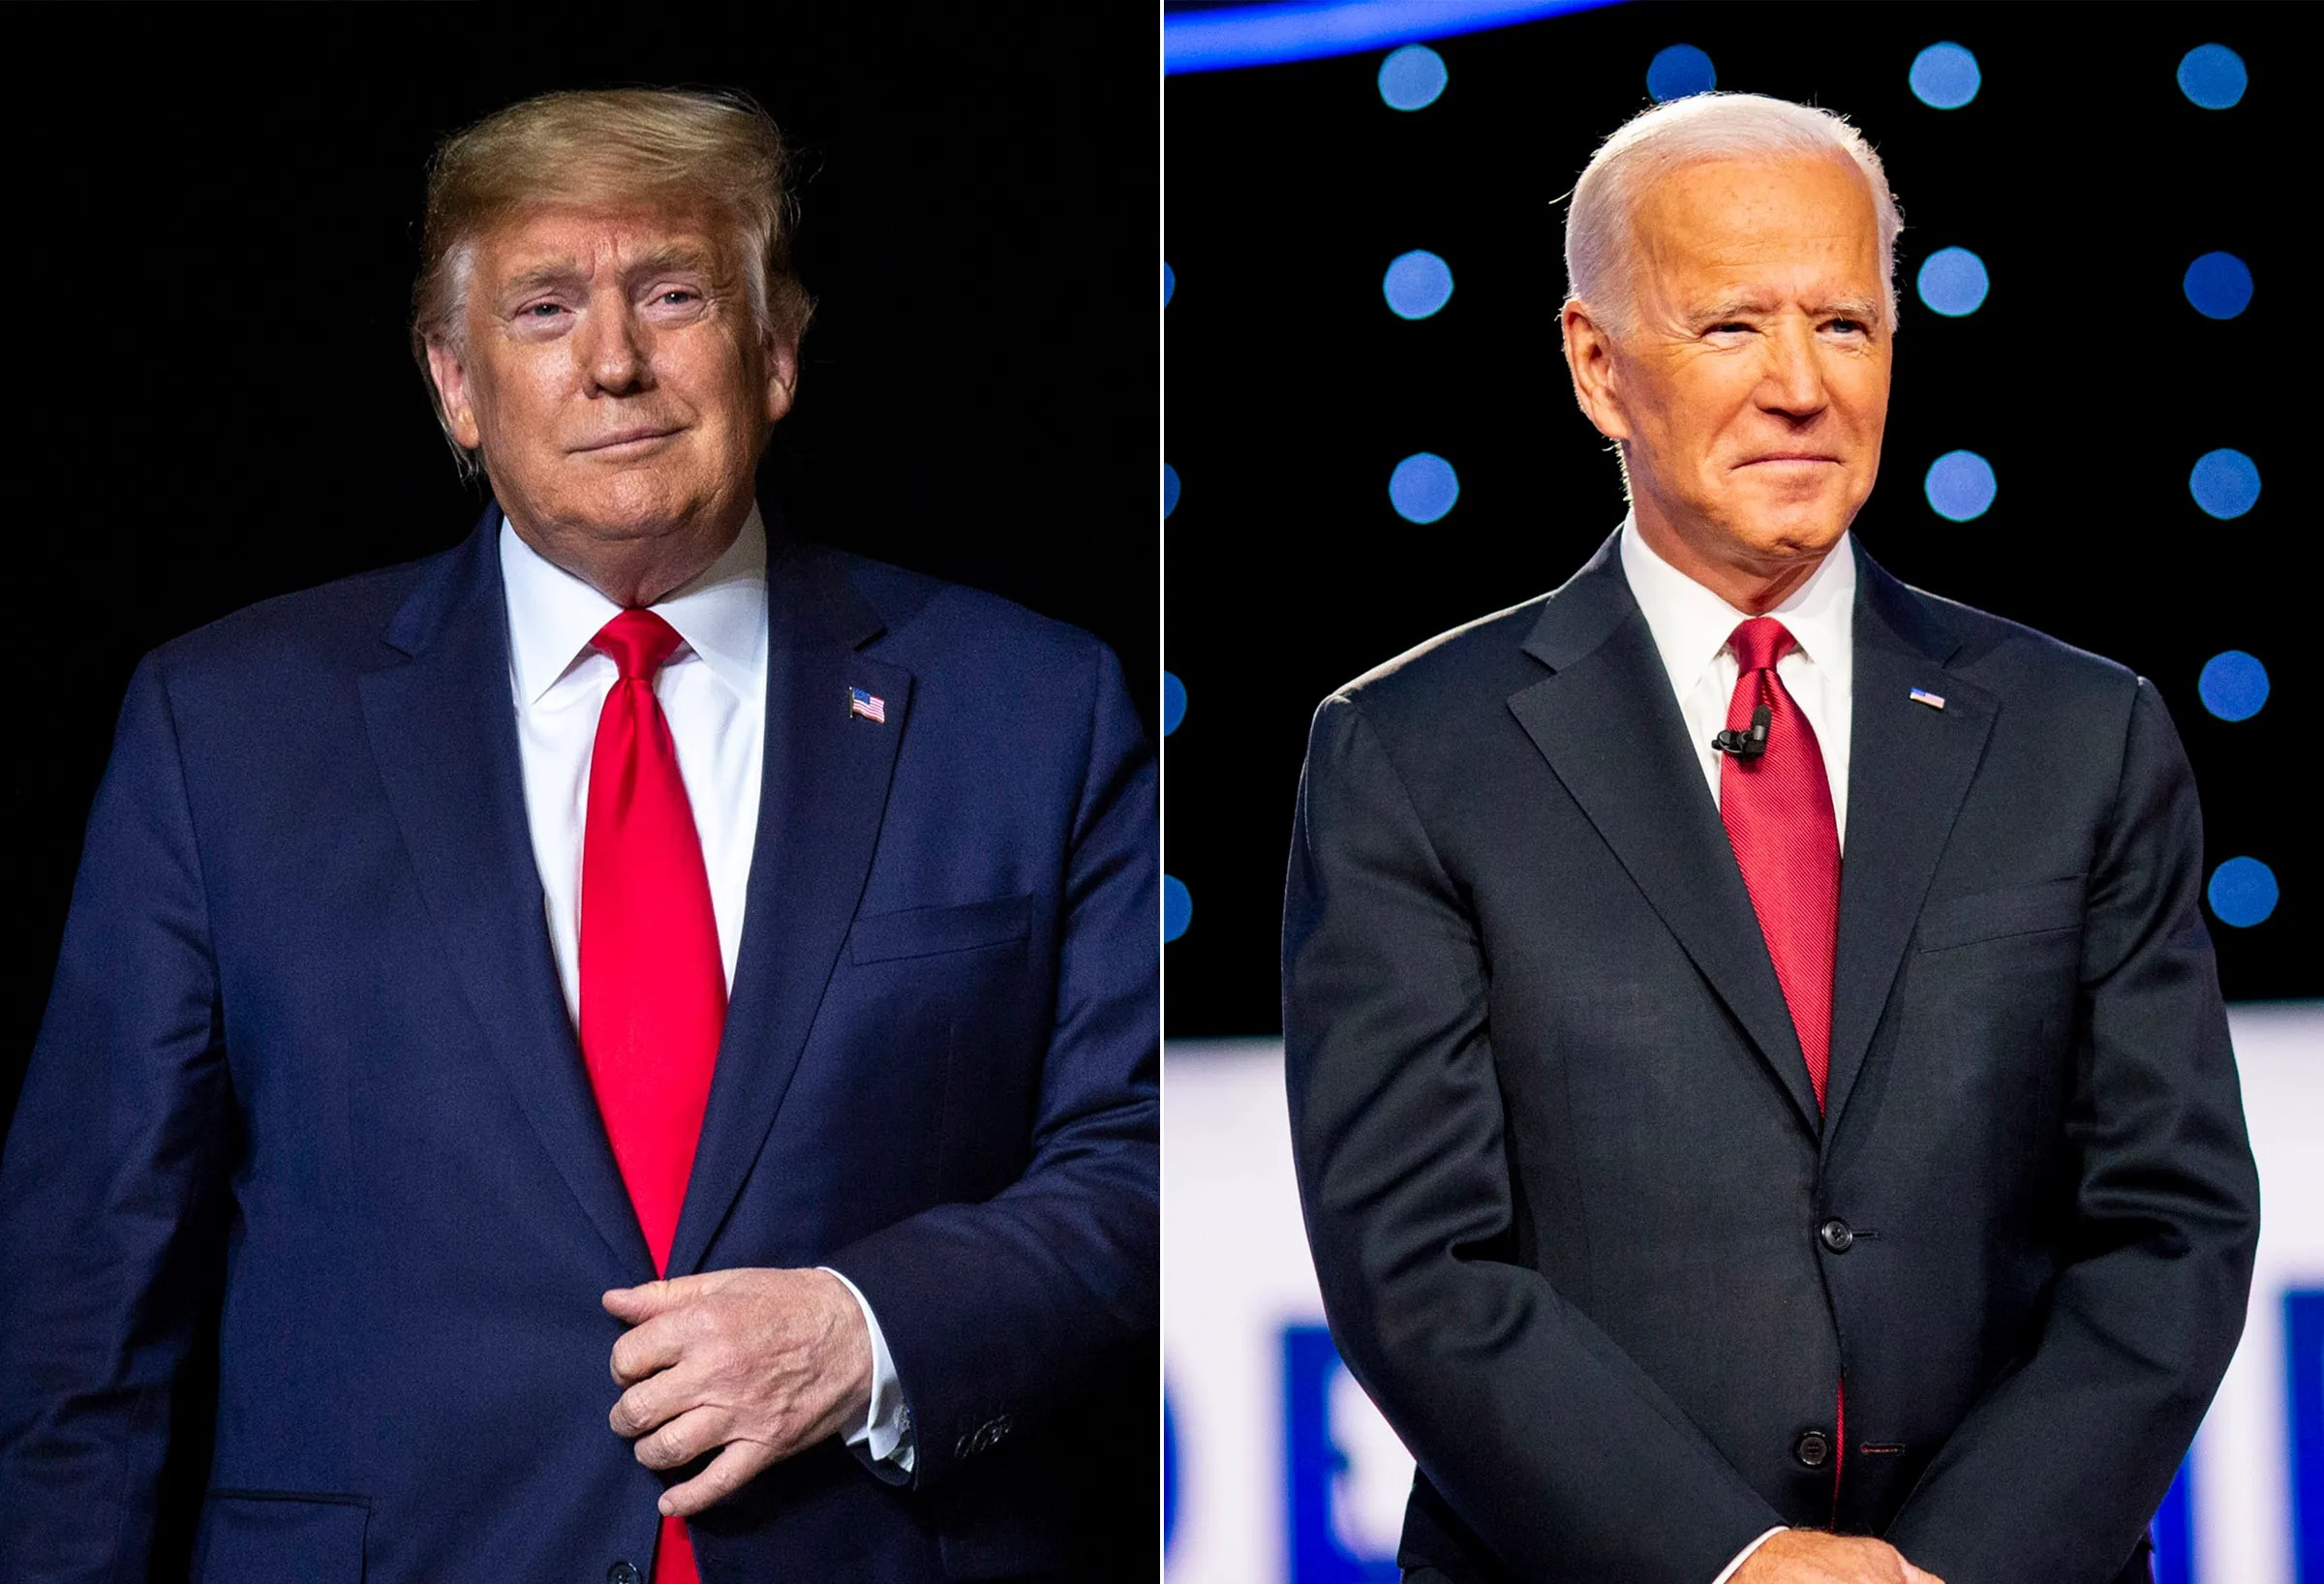 President Donald Trump has a lower approval rating in Michigan than former Vice President Joe Biden, according to data from the Democracy Fund + UCLA Nationscape project.